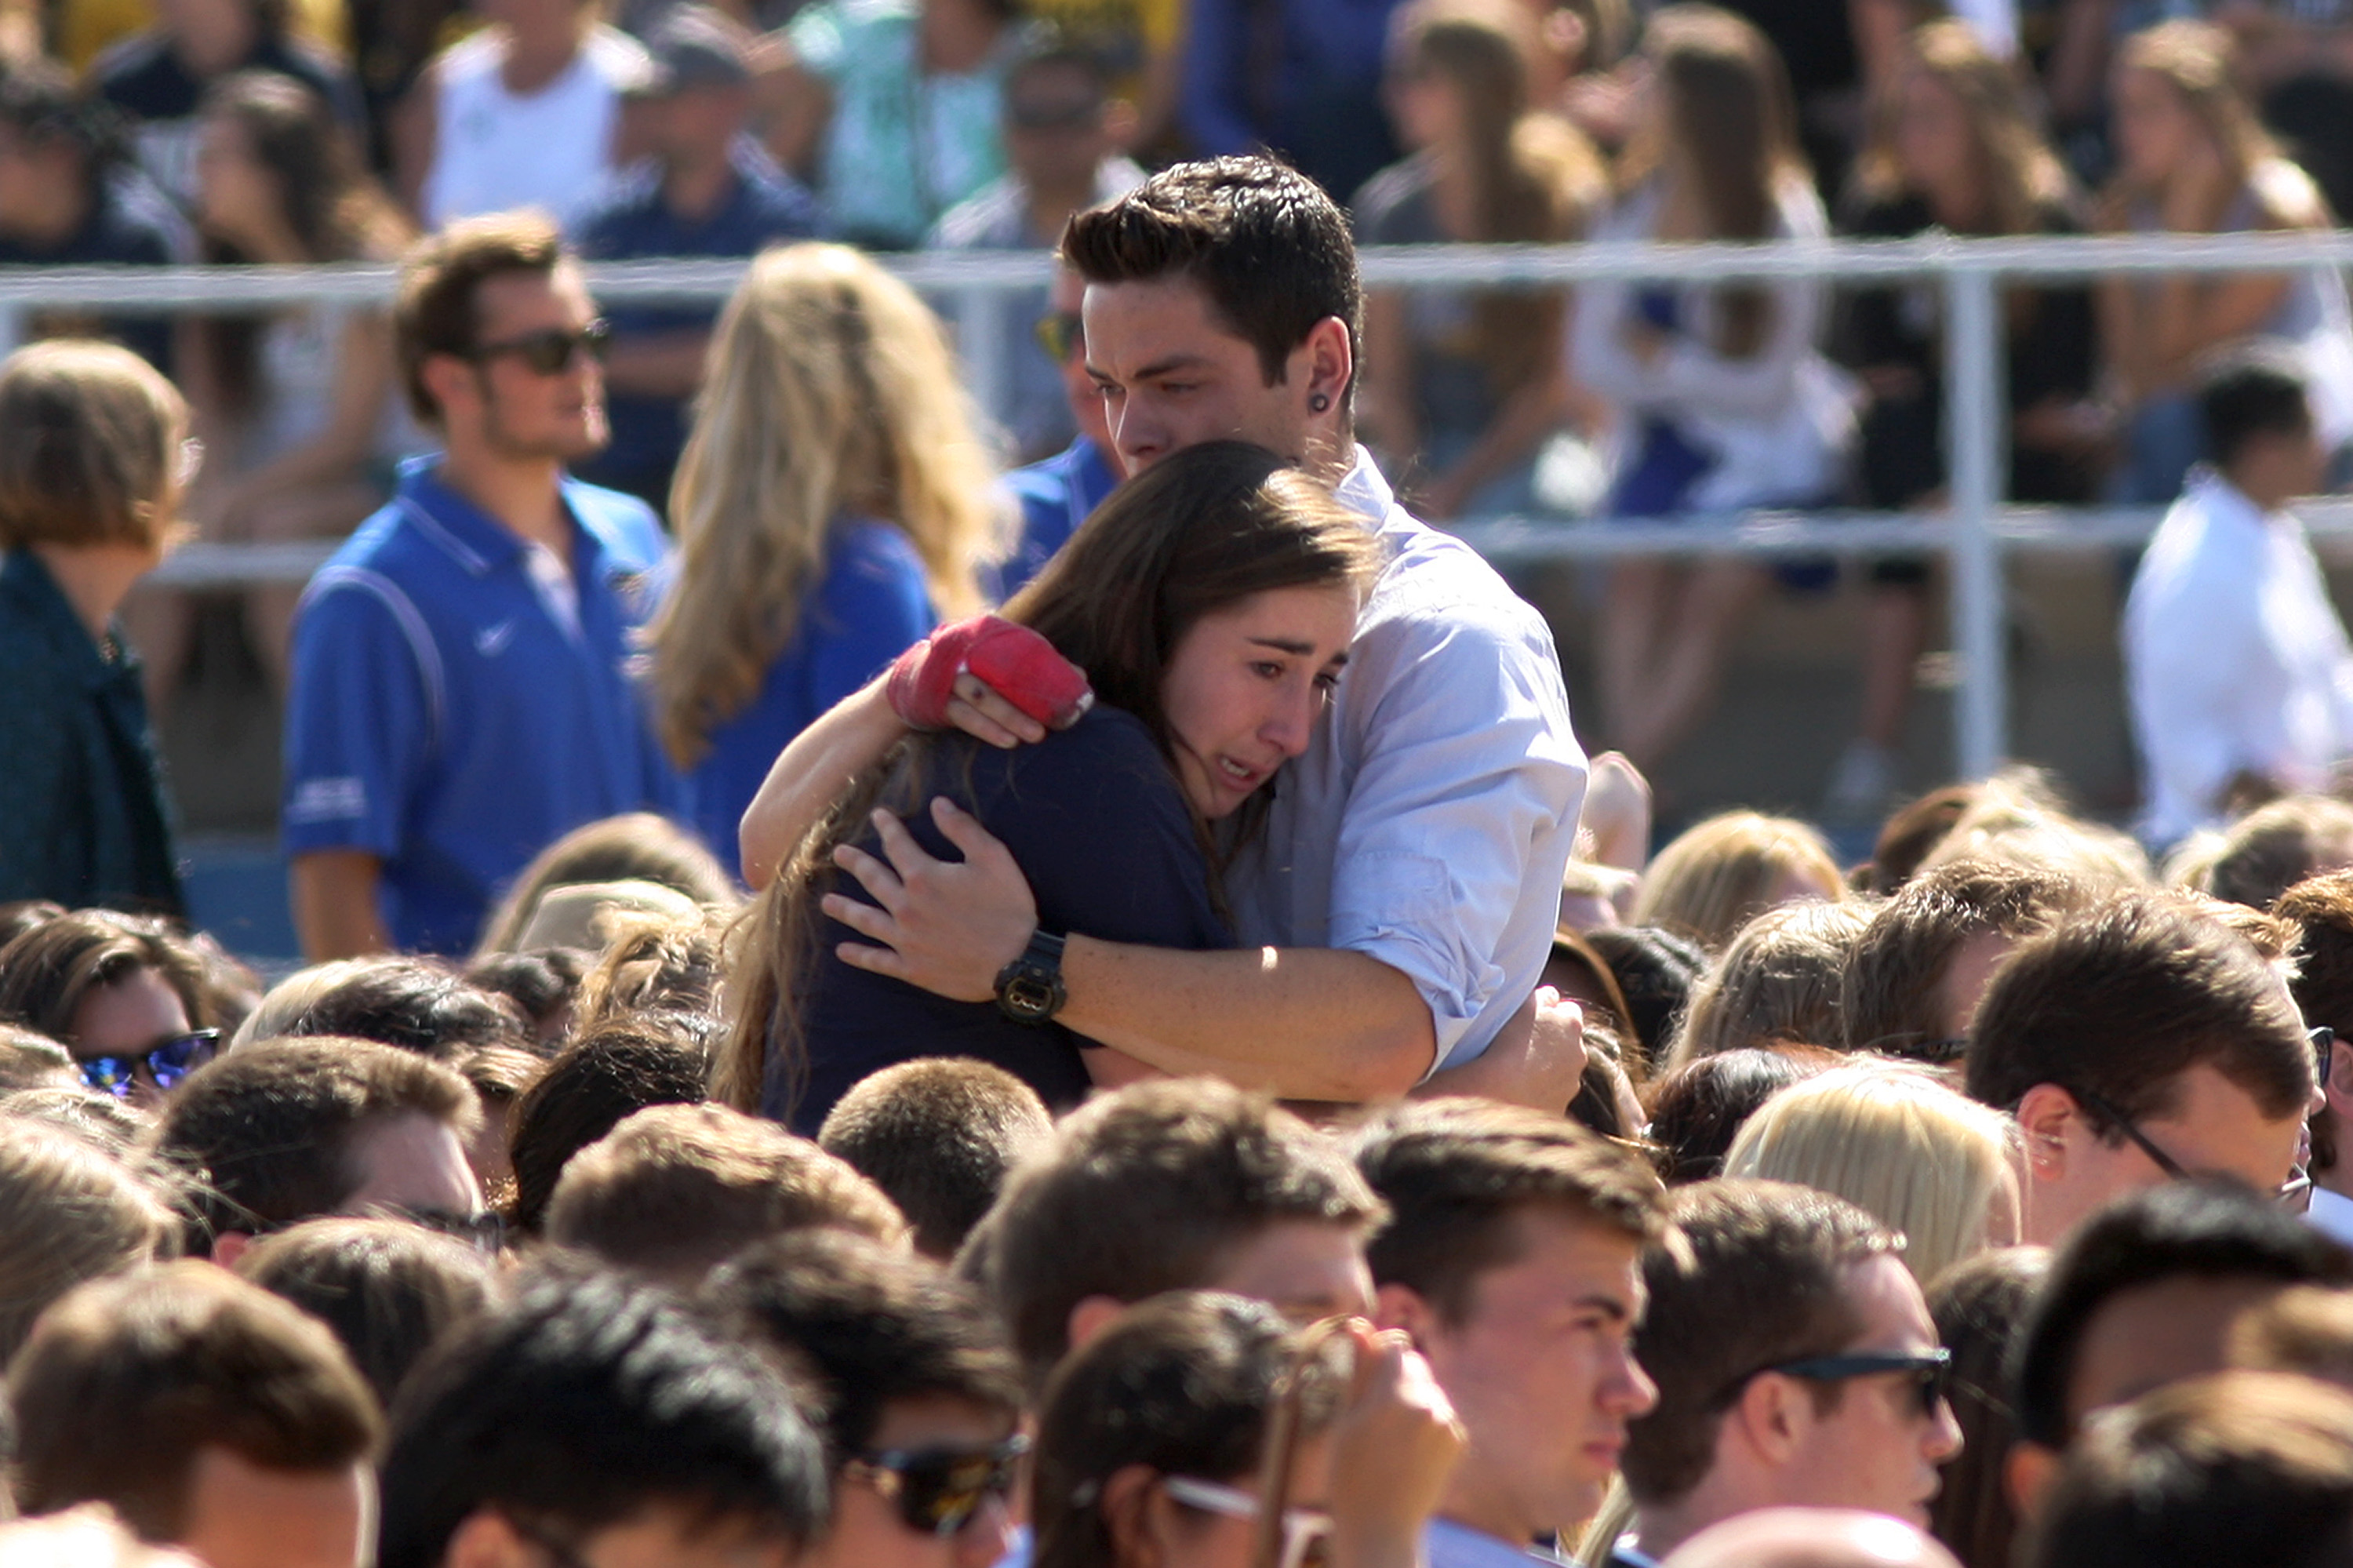 People hug at a public memorial on the Day of Mourning and Reflection for the victims of a killing spree at University of California, Santa Barbara on May 27, 2014 in Isla Vista, California.